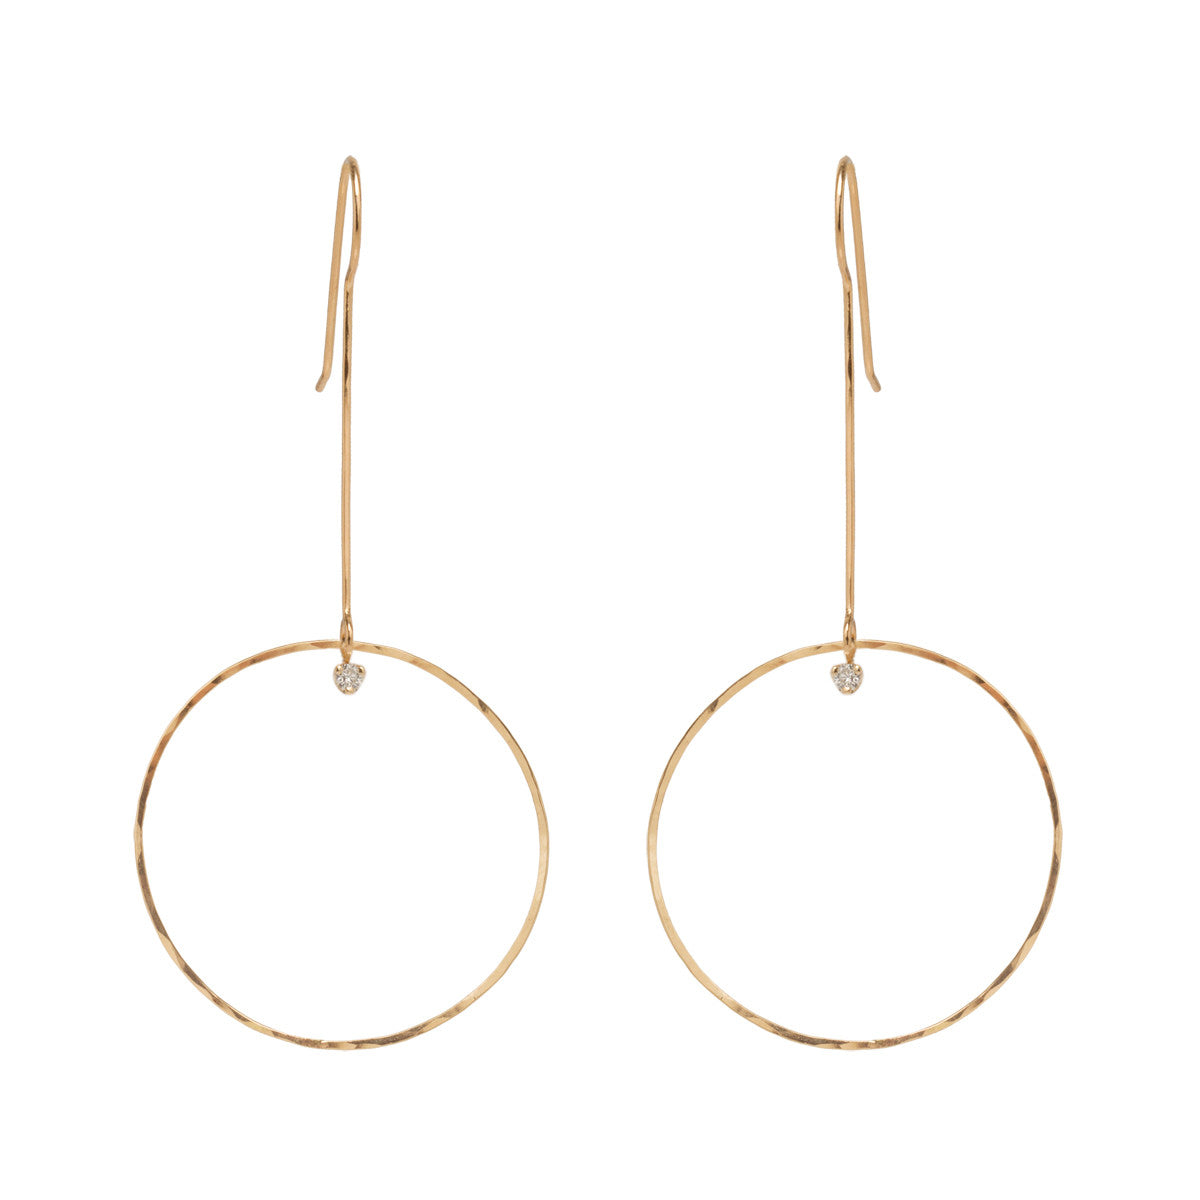 Zoë Chicco 14kt Yellow Gold Large Drop Circle Earrings with Prong Set Diamonds